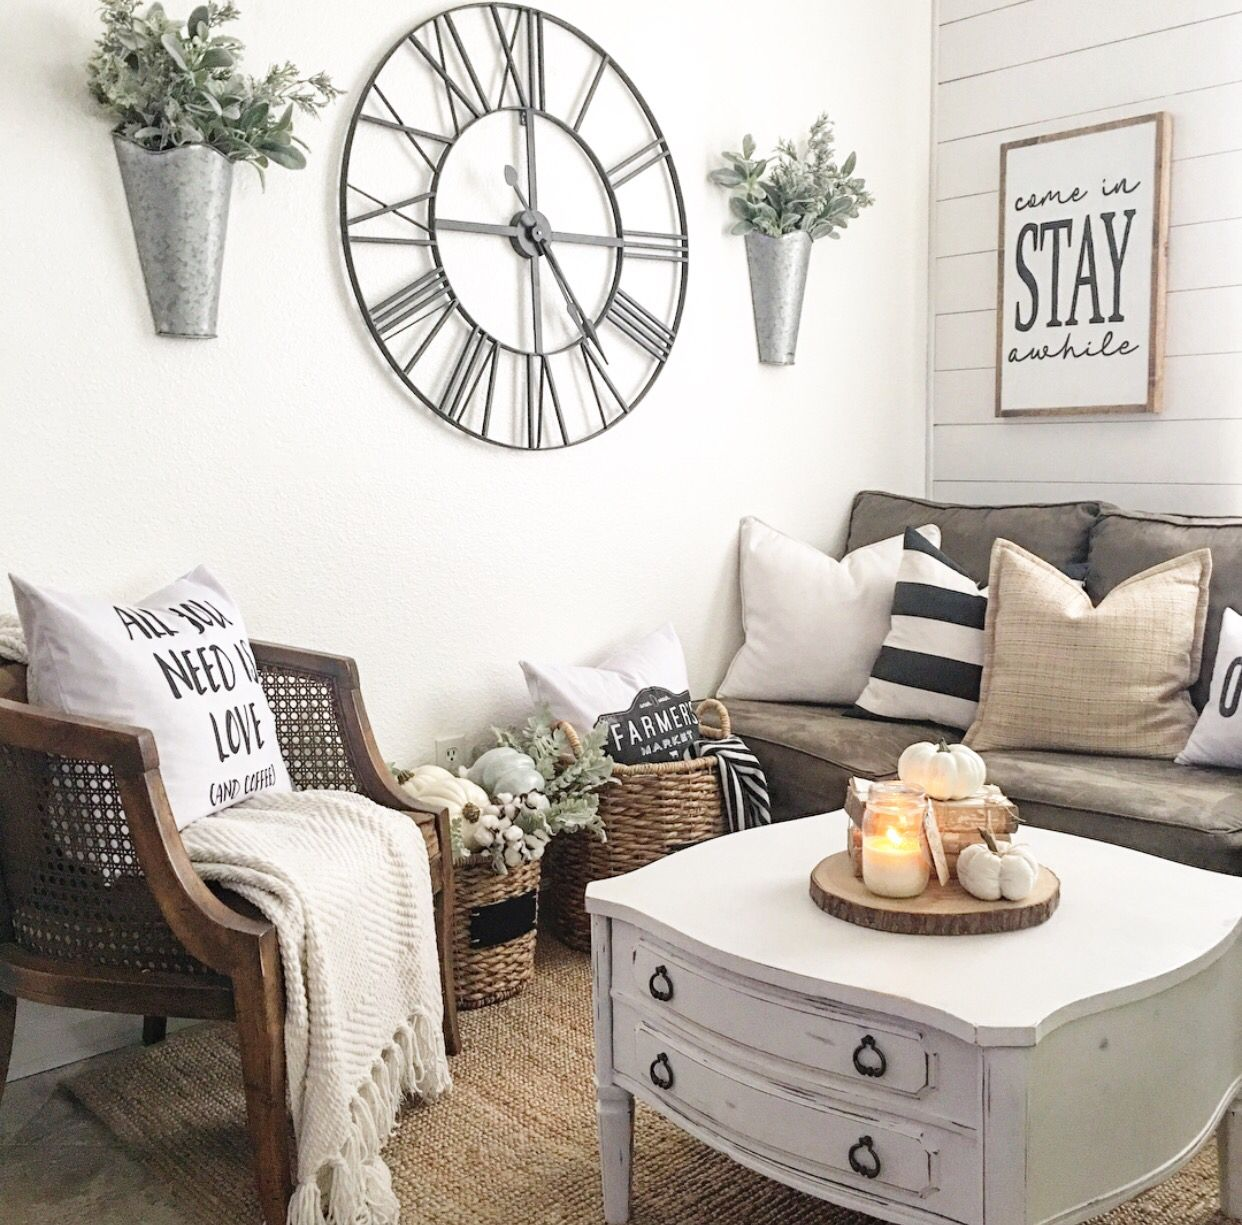 Elegant Office Furniture Rustic Elegant Living Room: Neutral Farmhouse Style -IG @nellyfriedel